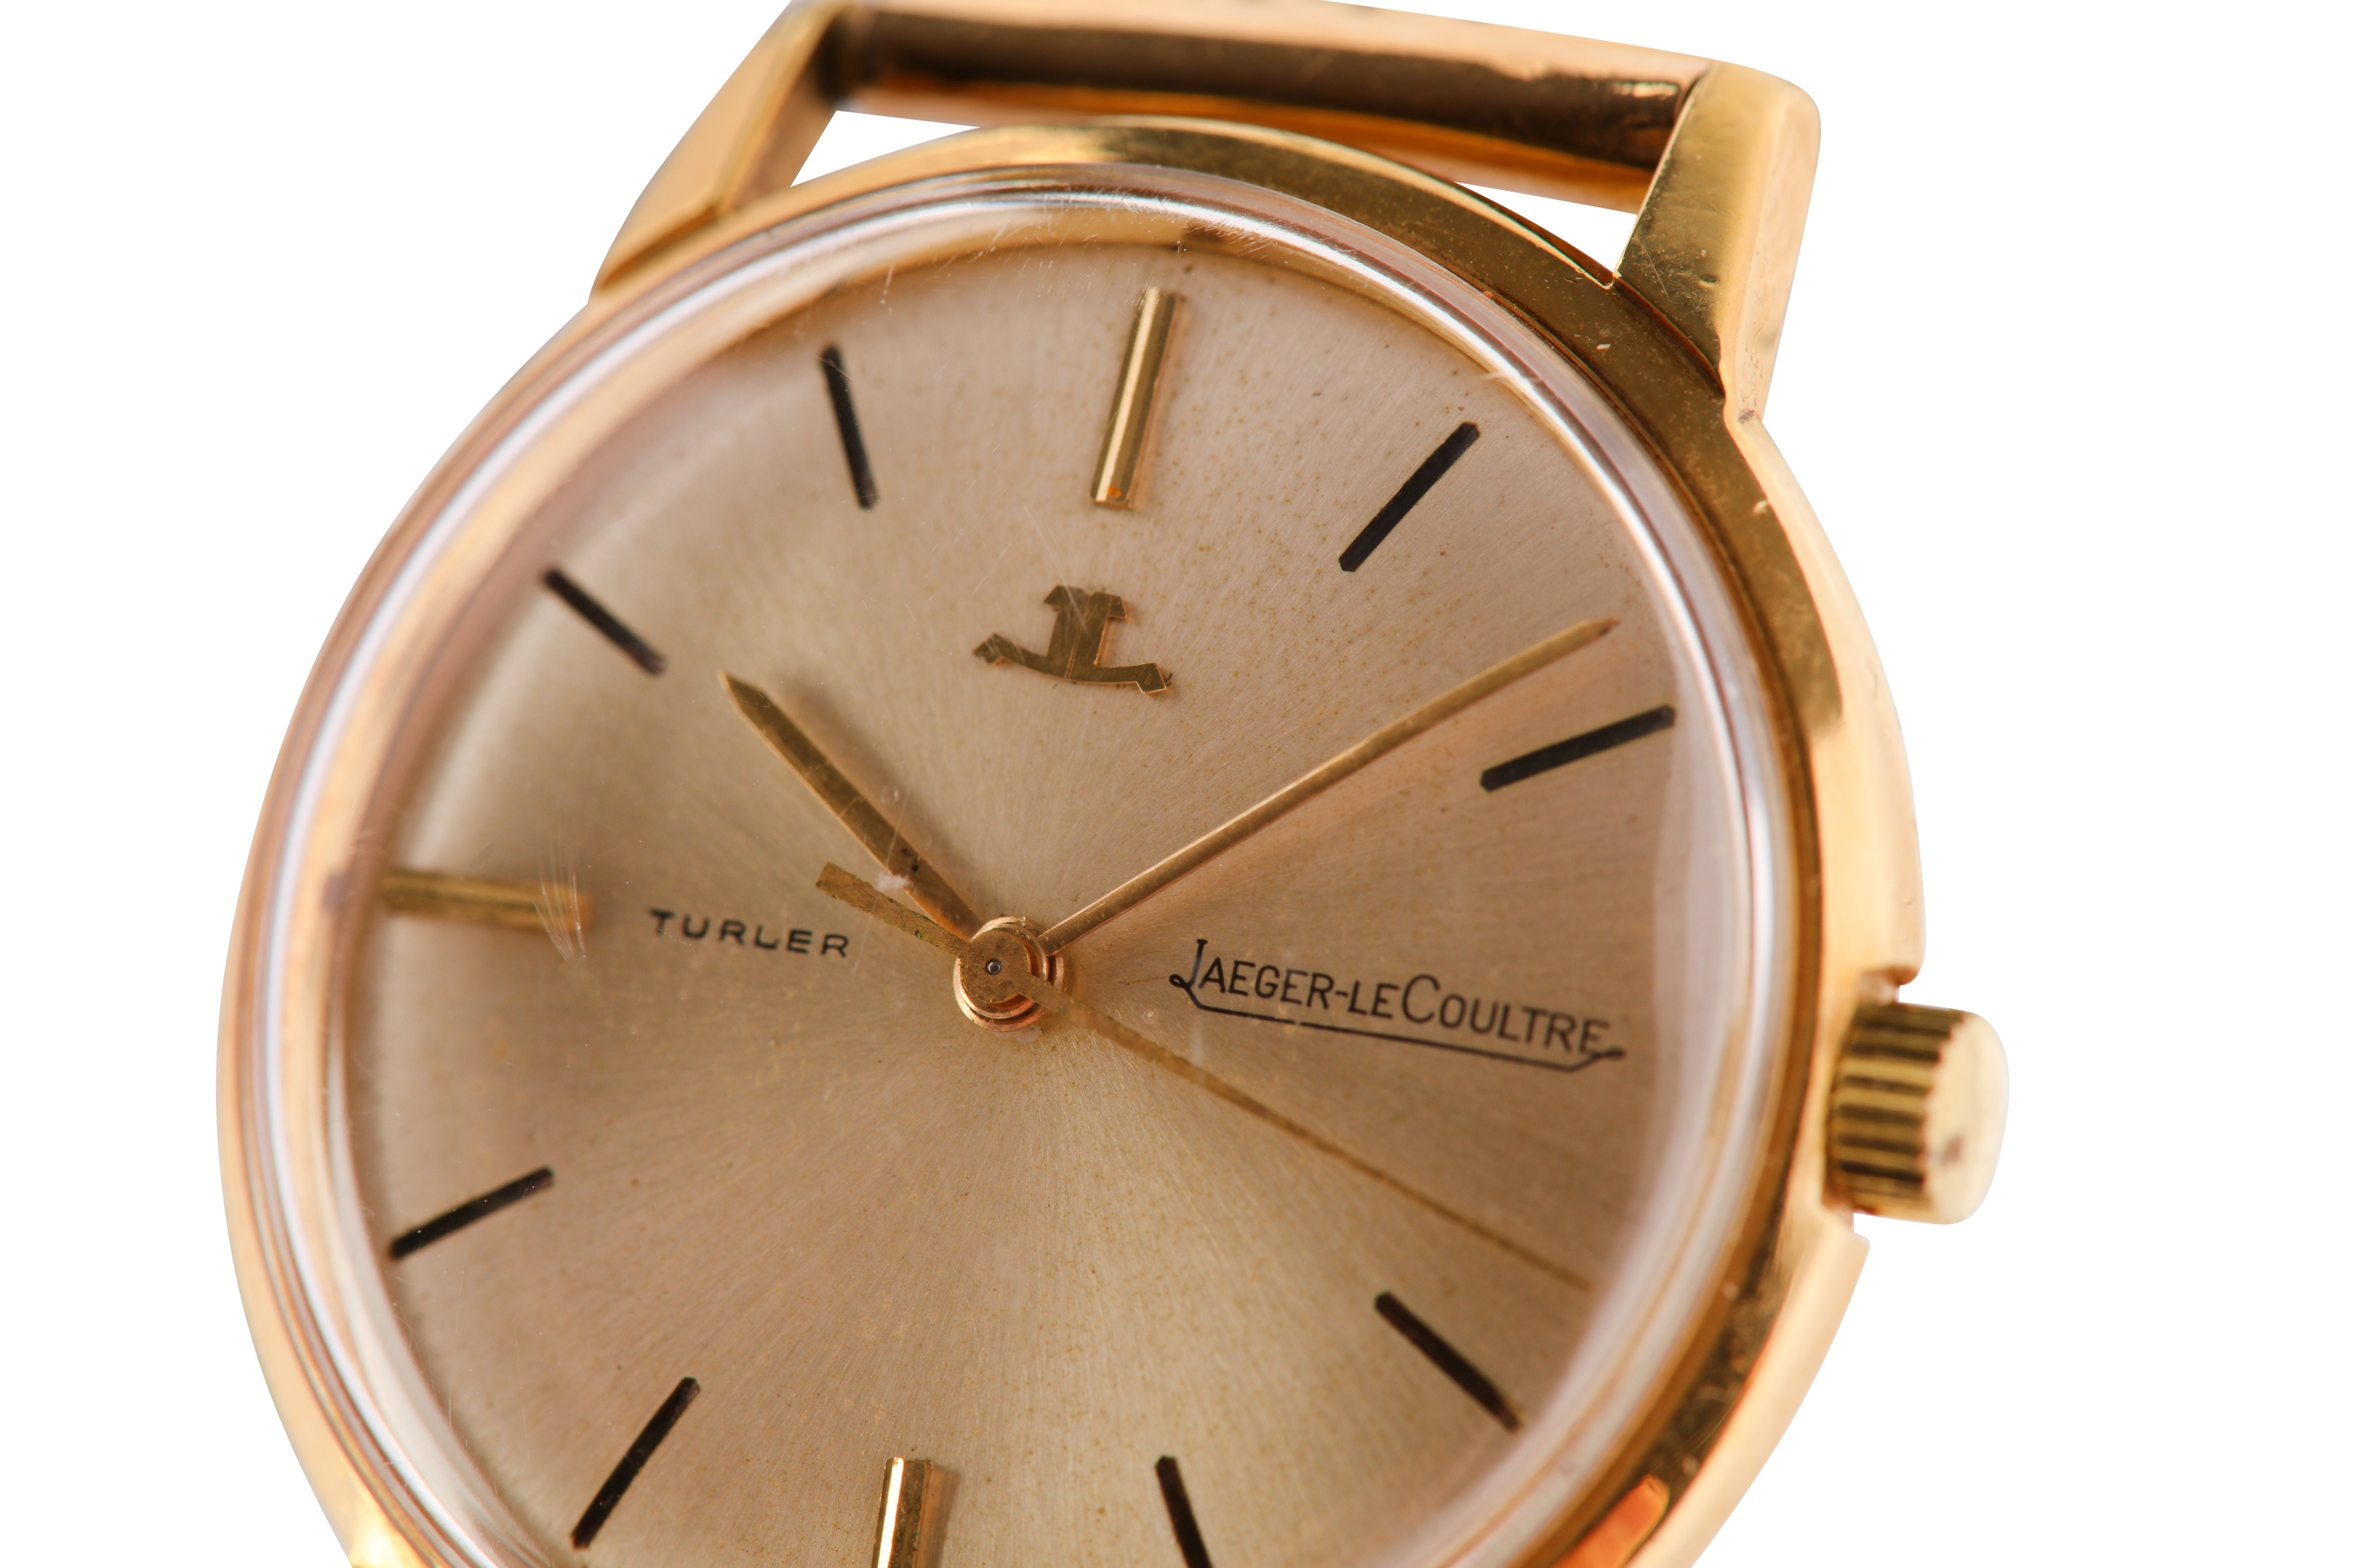 JAEGER LECOULTRE. - Image 2 of 6